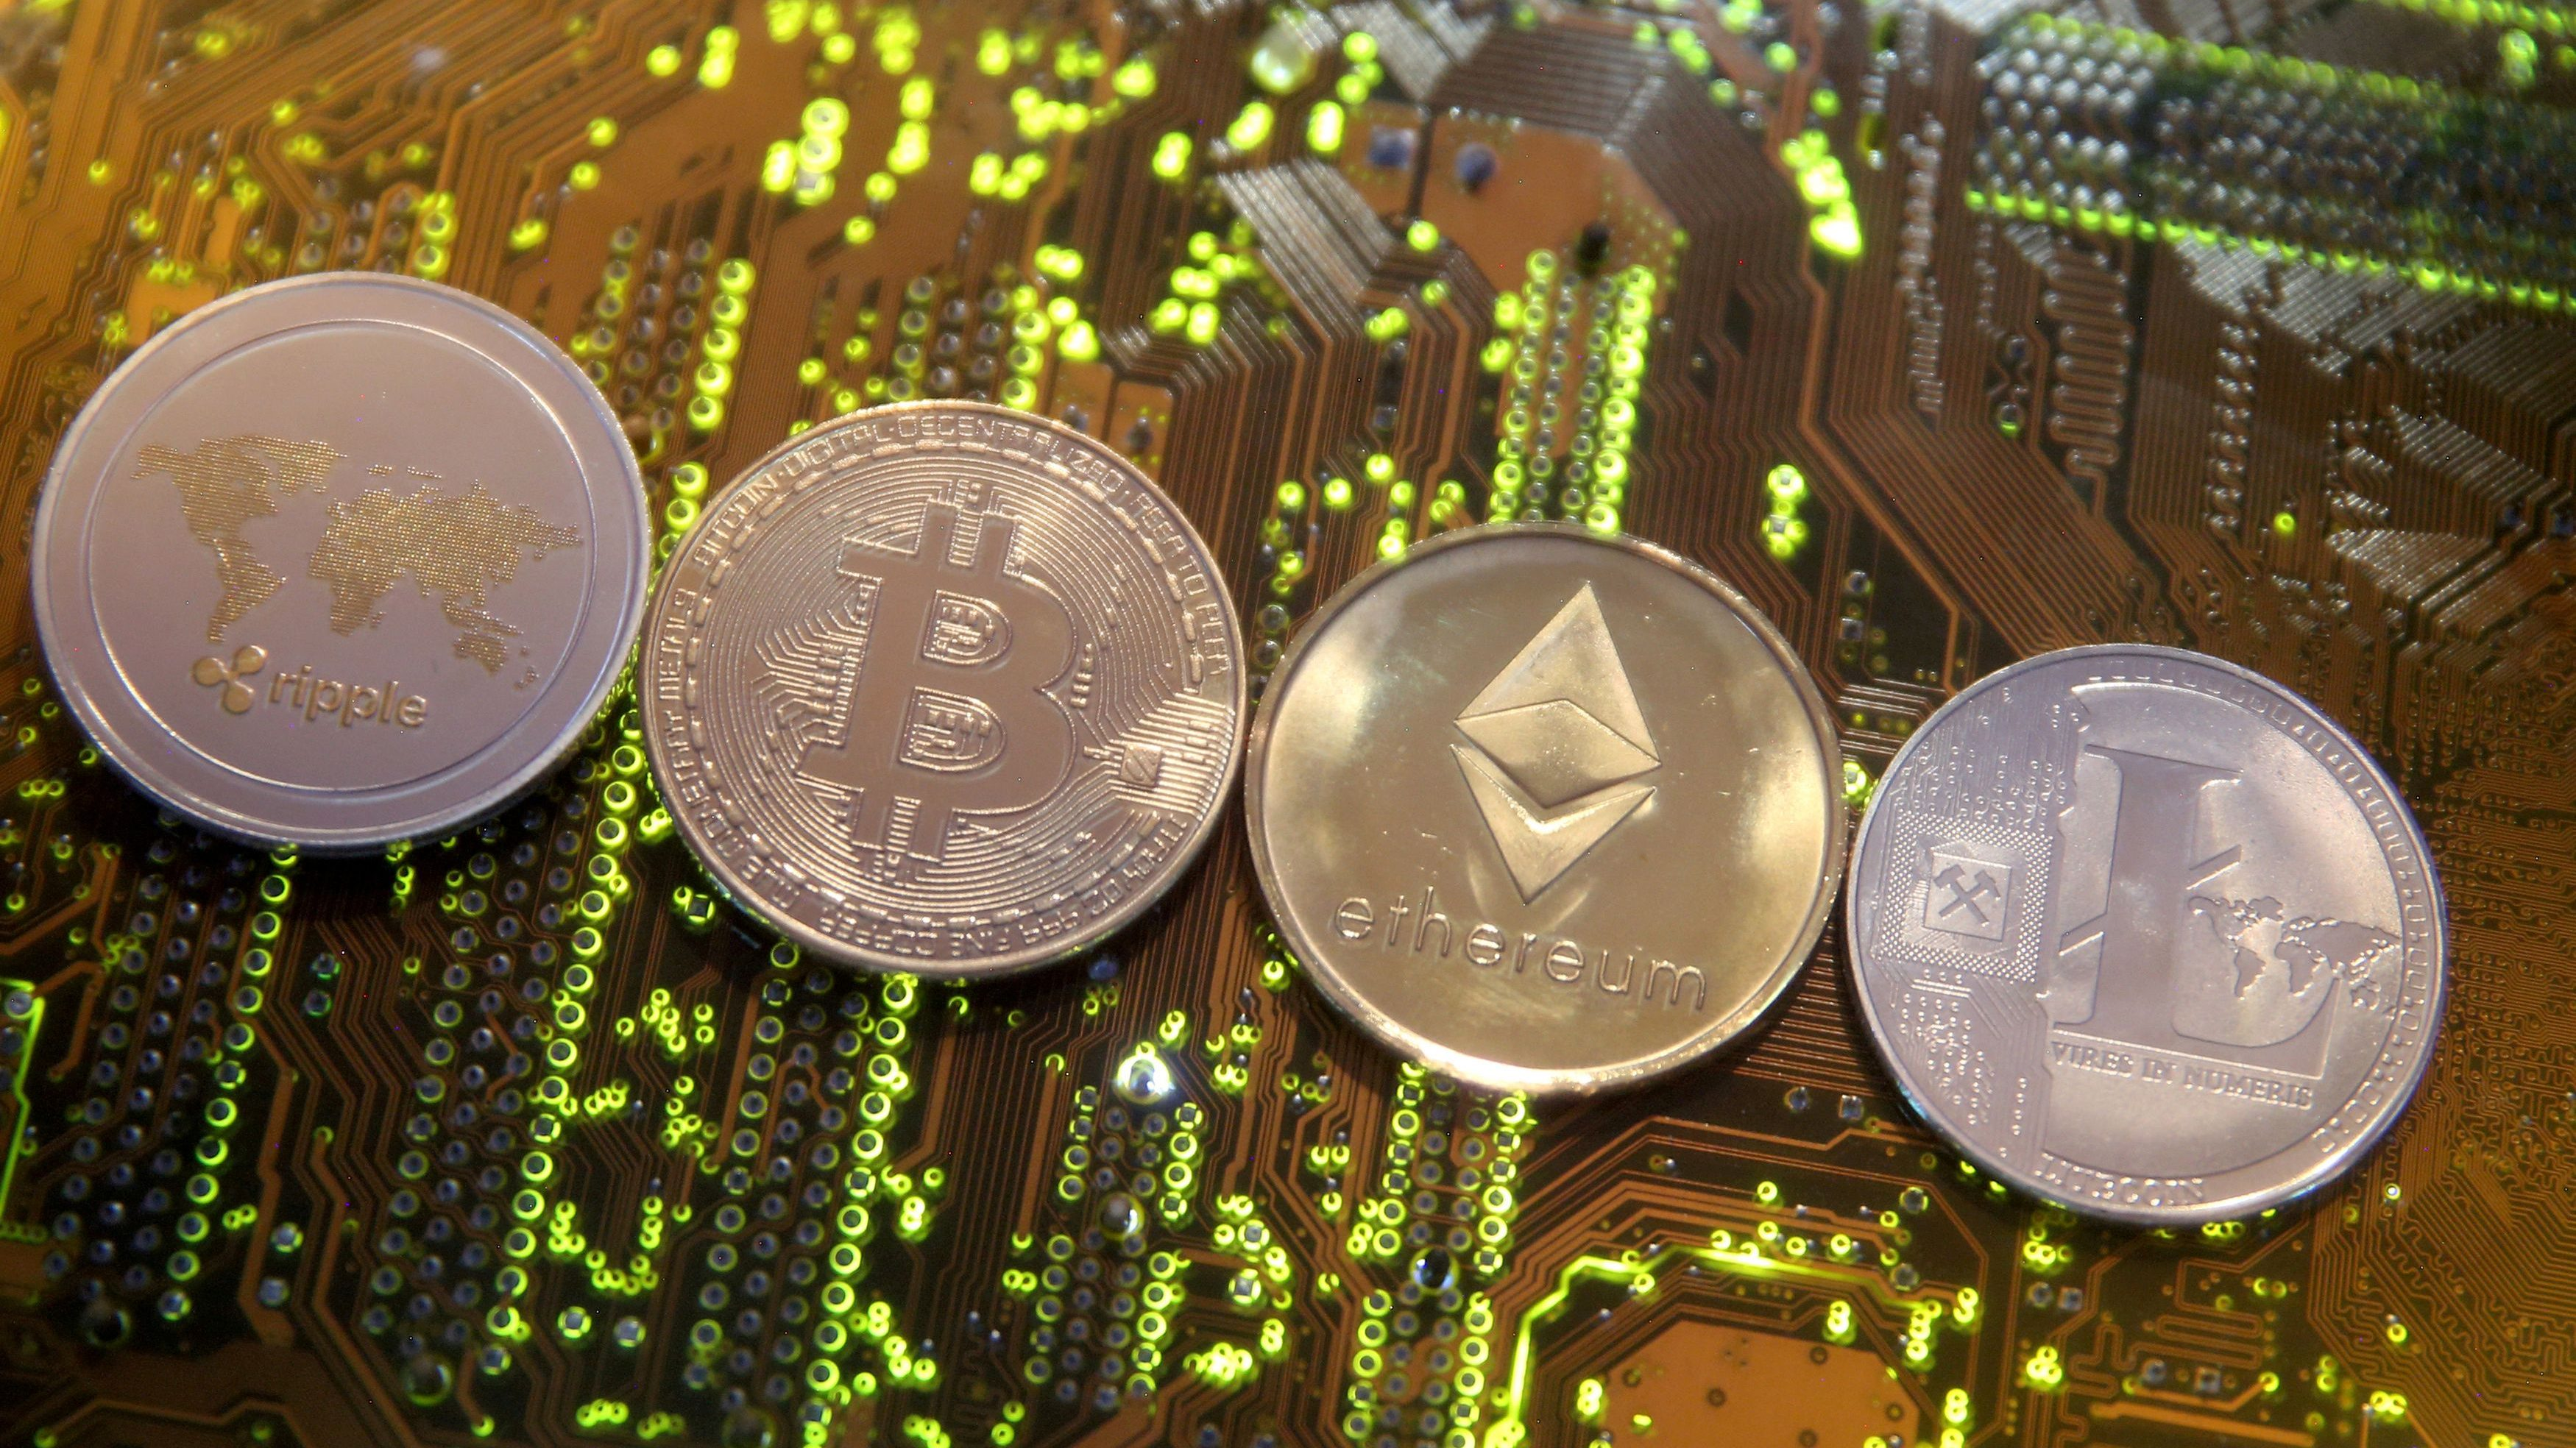 New Chinese study puts Ethereum as top cryptocurrency, Bitcoin 13th